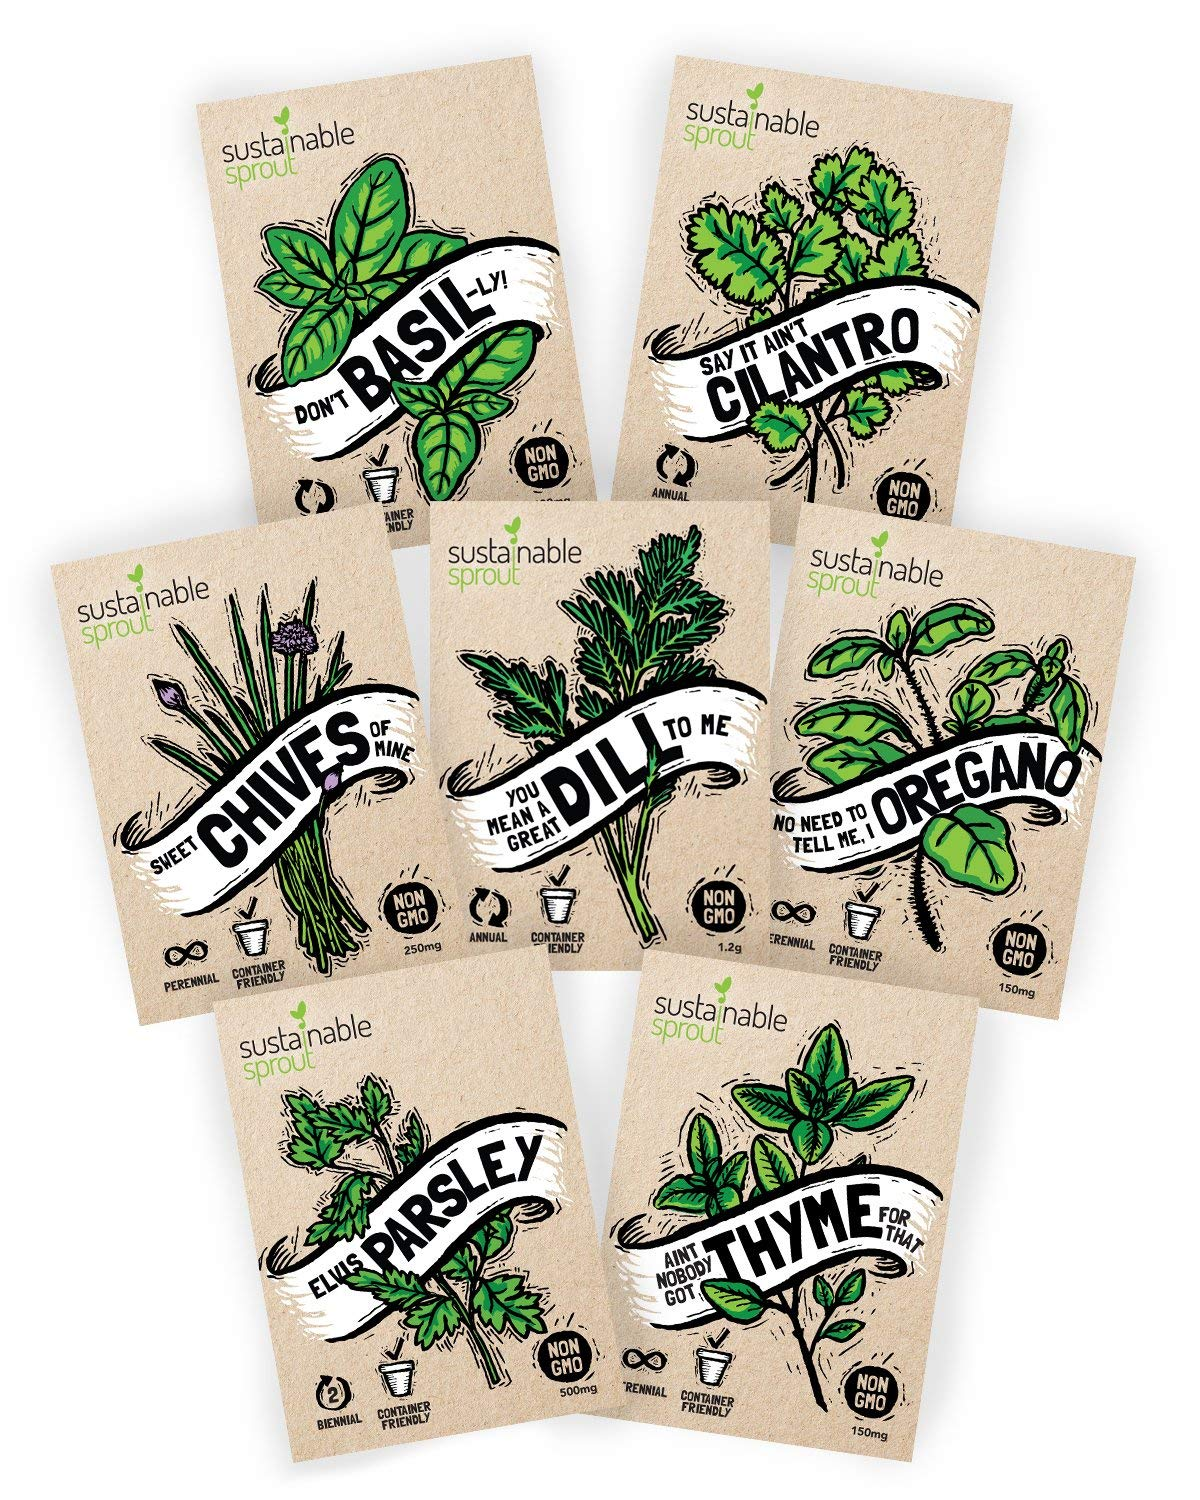 Sustainable Sprout SS01 Variety Pack for Planting an Indoor Garden: Basil, Parsley, Thyme, Oregano, Cilantro, Chives, Dill Herb SillySeed Collection-Over 3500 Seeds 100% Non GMO by Sustainable Sprout